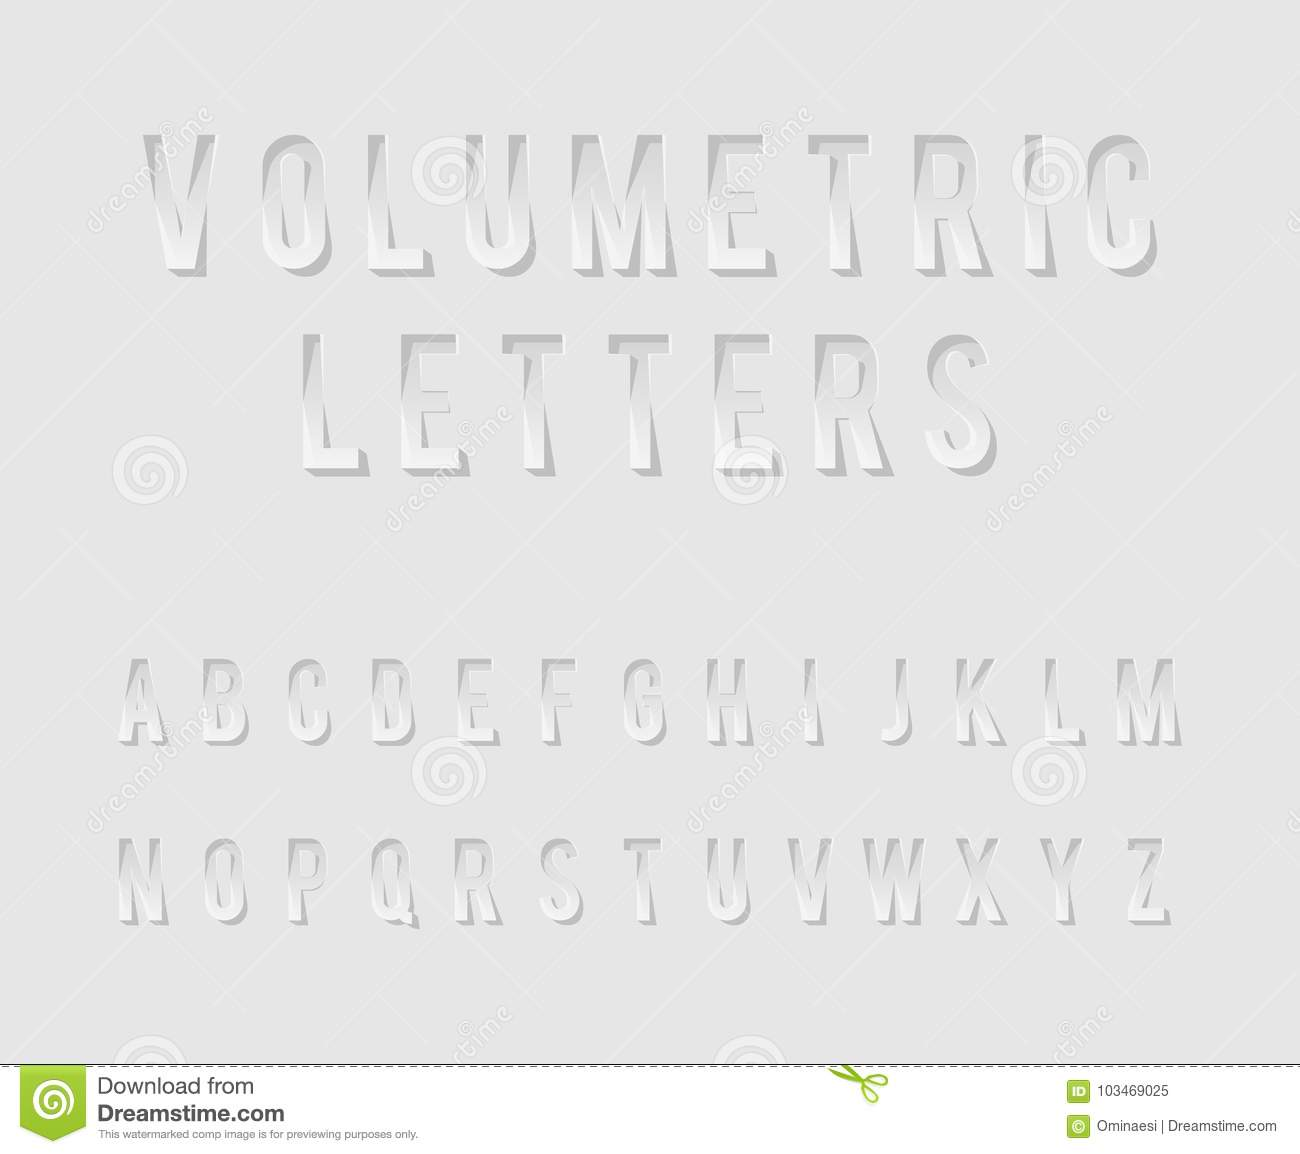 Volumetric Cutout Alphabet Letters Realistic 3d Template Design Mock